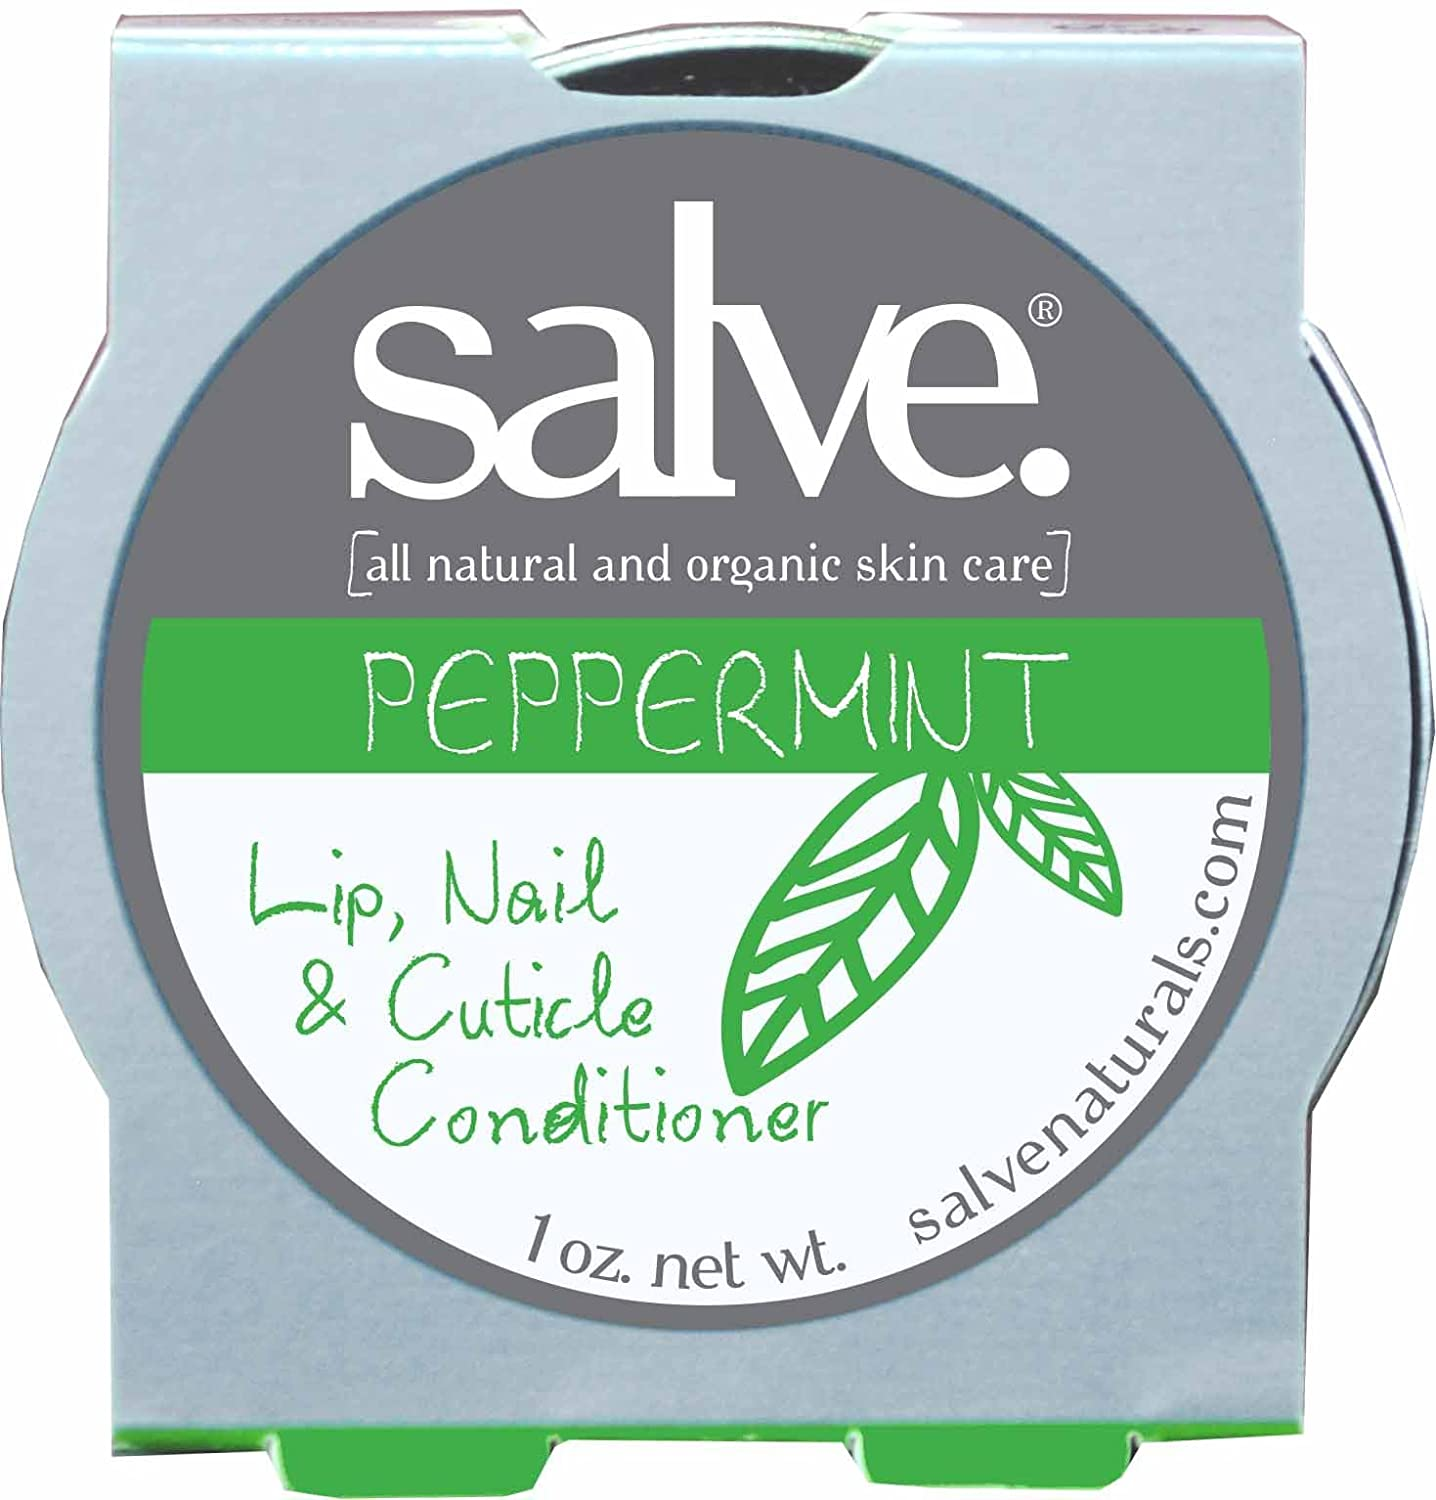 Peppermint Lip, Nail, Cuticle Conditioner